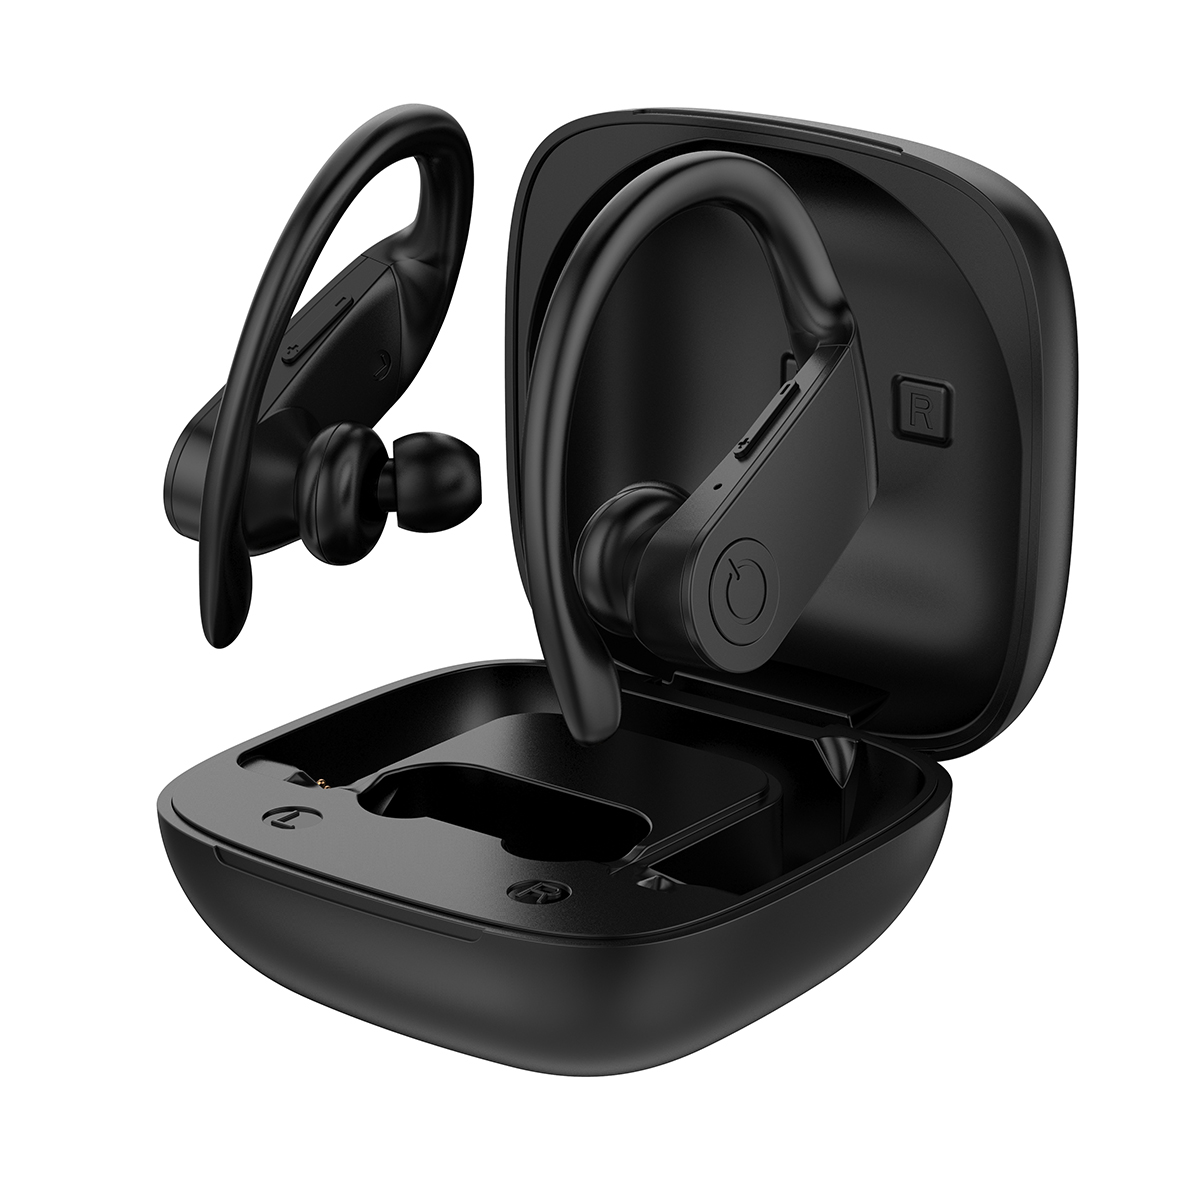 B11 Tws Wireless Earbuds Bluetooth 5 0 Led Earphone Ipx5 Waterproof Stereo Ear Hook Headset Headphone With Charging Case For Iphone For Samsung Smart Phone Walmart Com Walmart Com